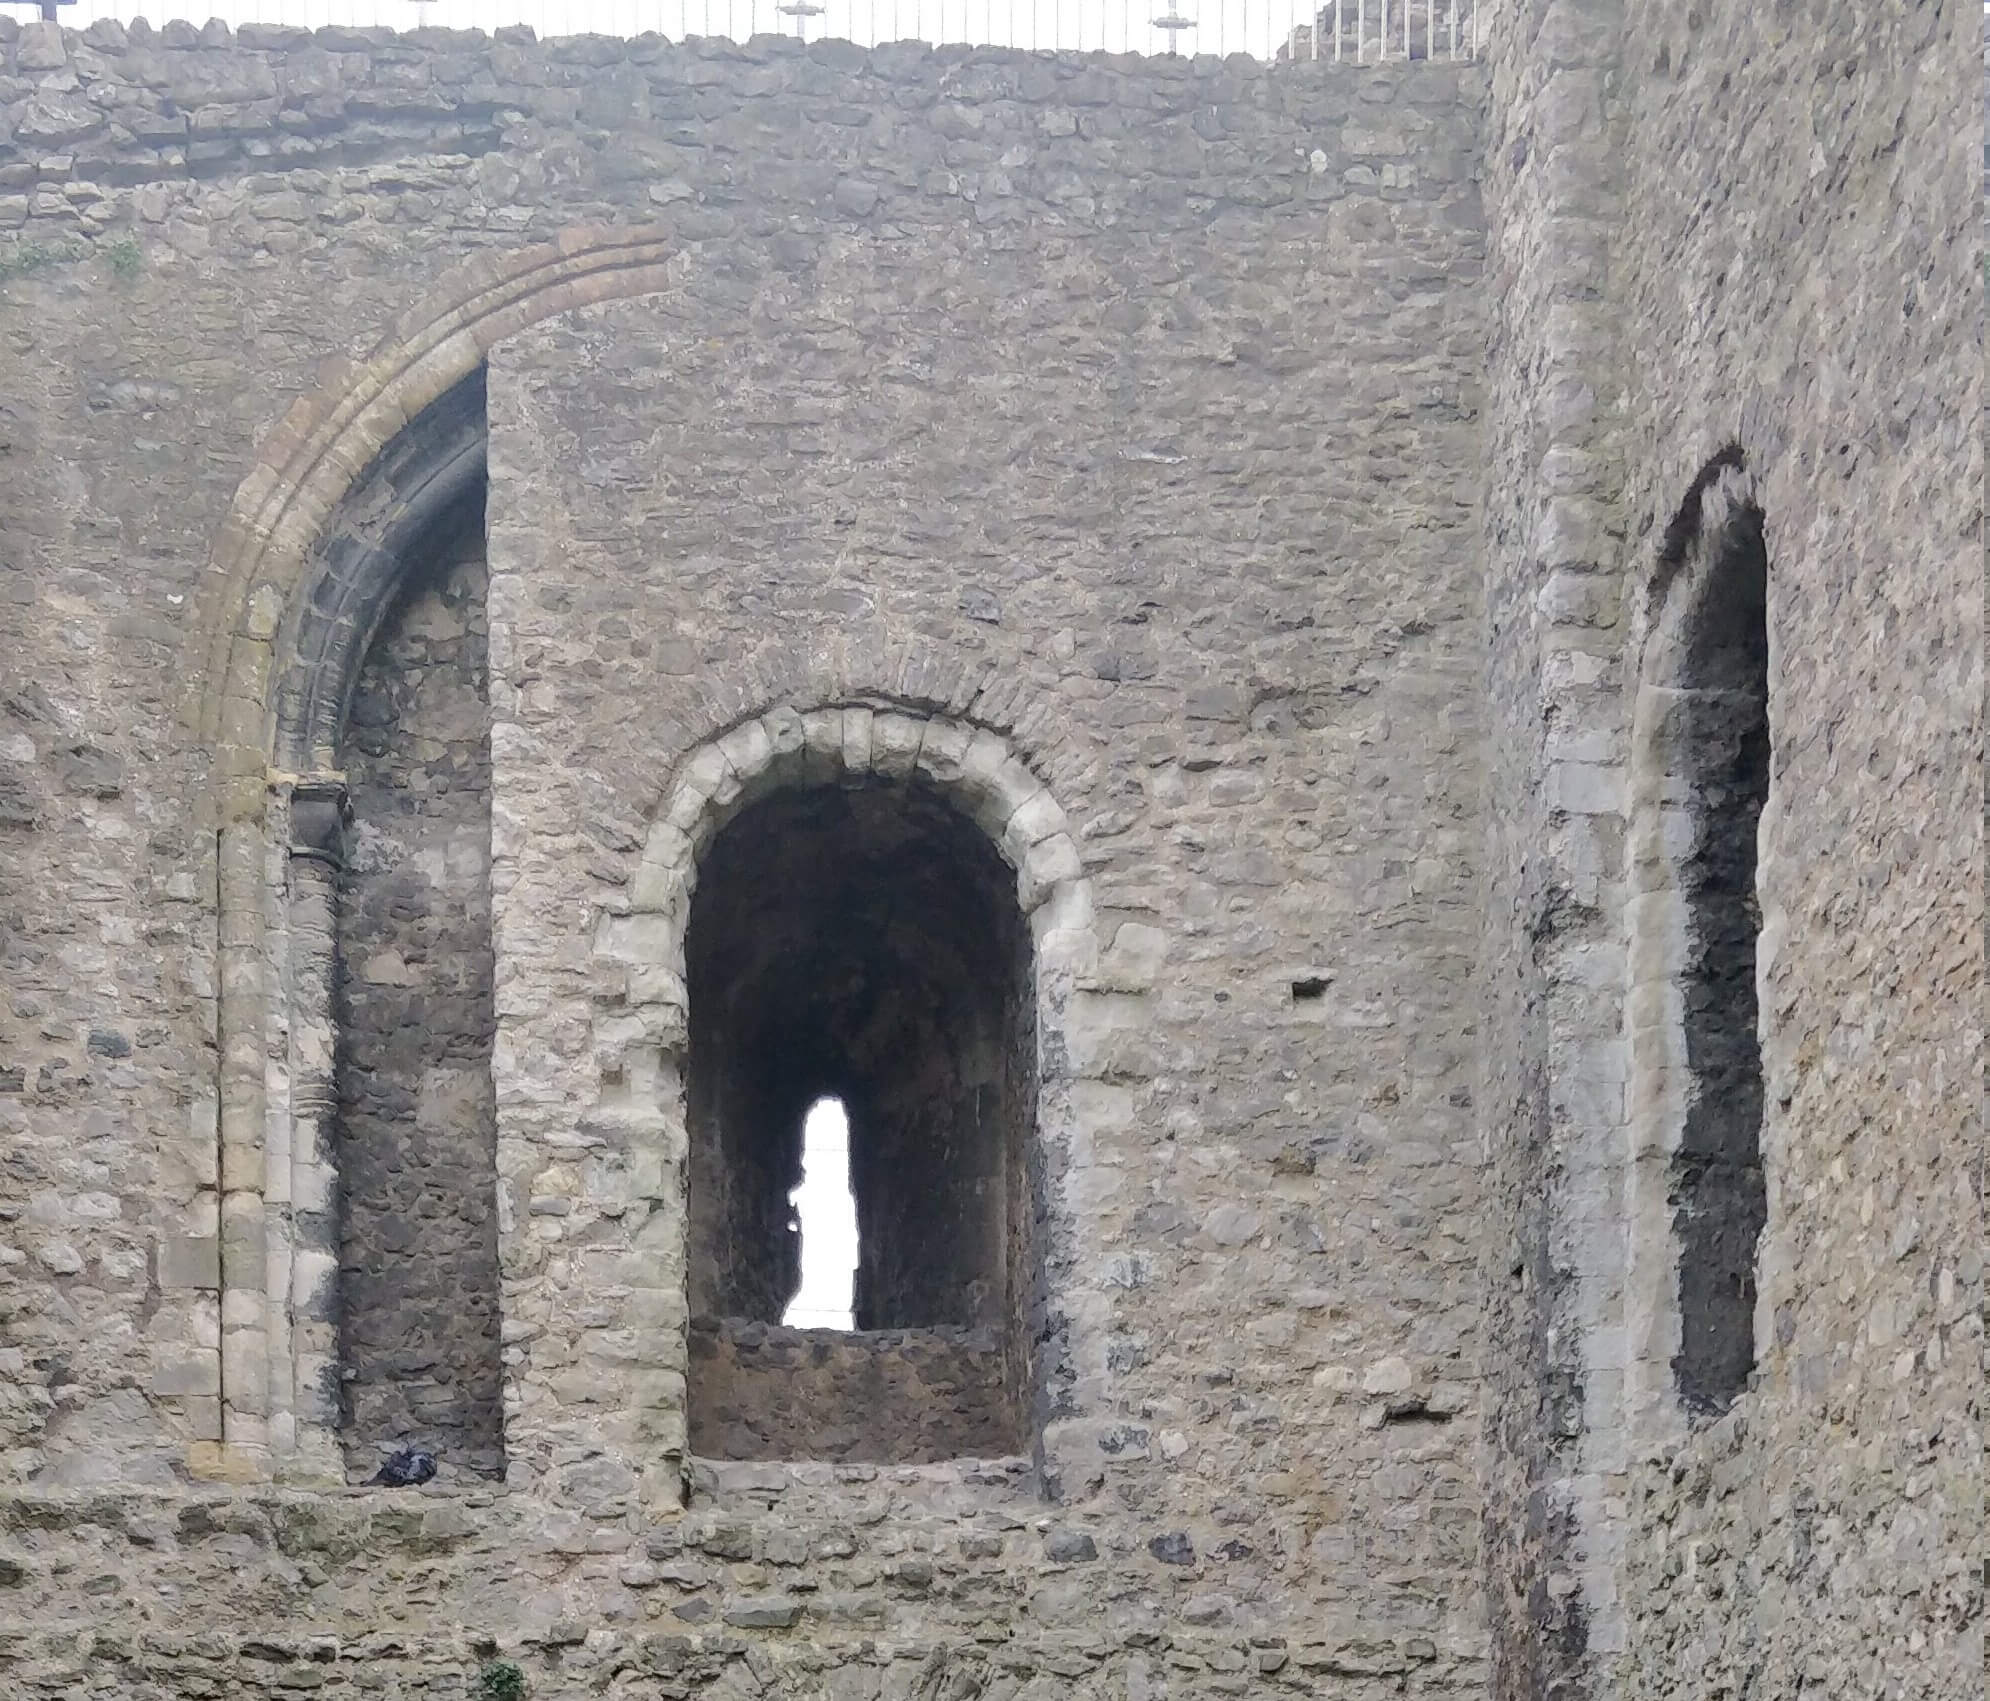 Two windows at the south east corner of the keep. One of them has a larger arch over it which abruptly stops where the wall has been filled in.